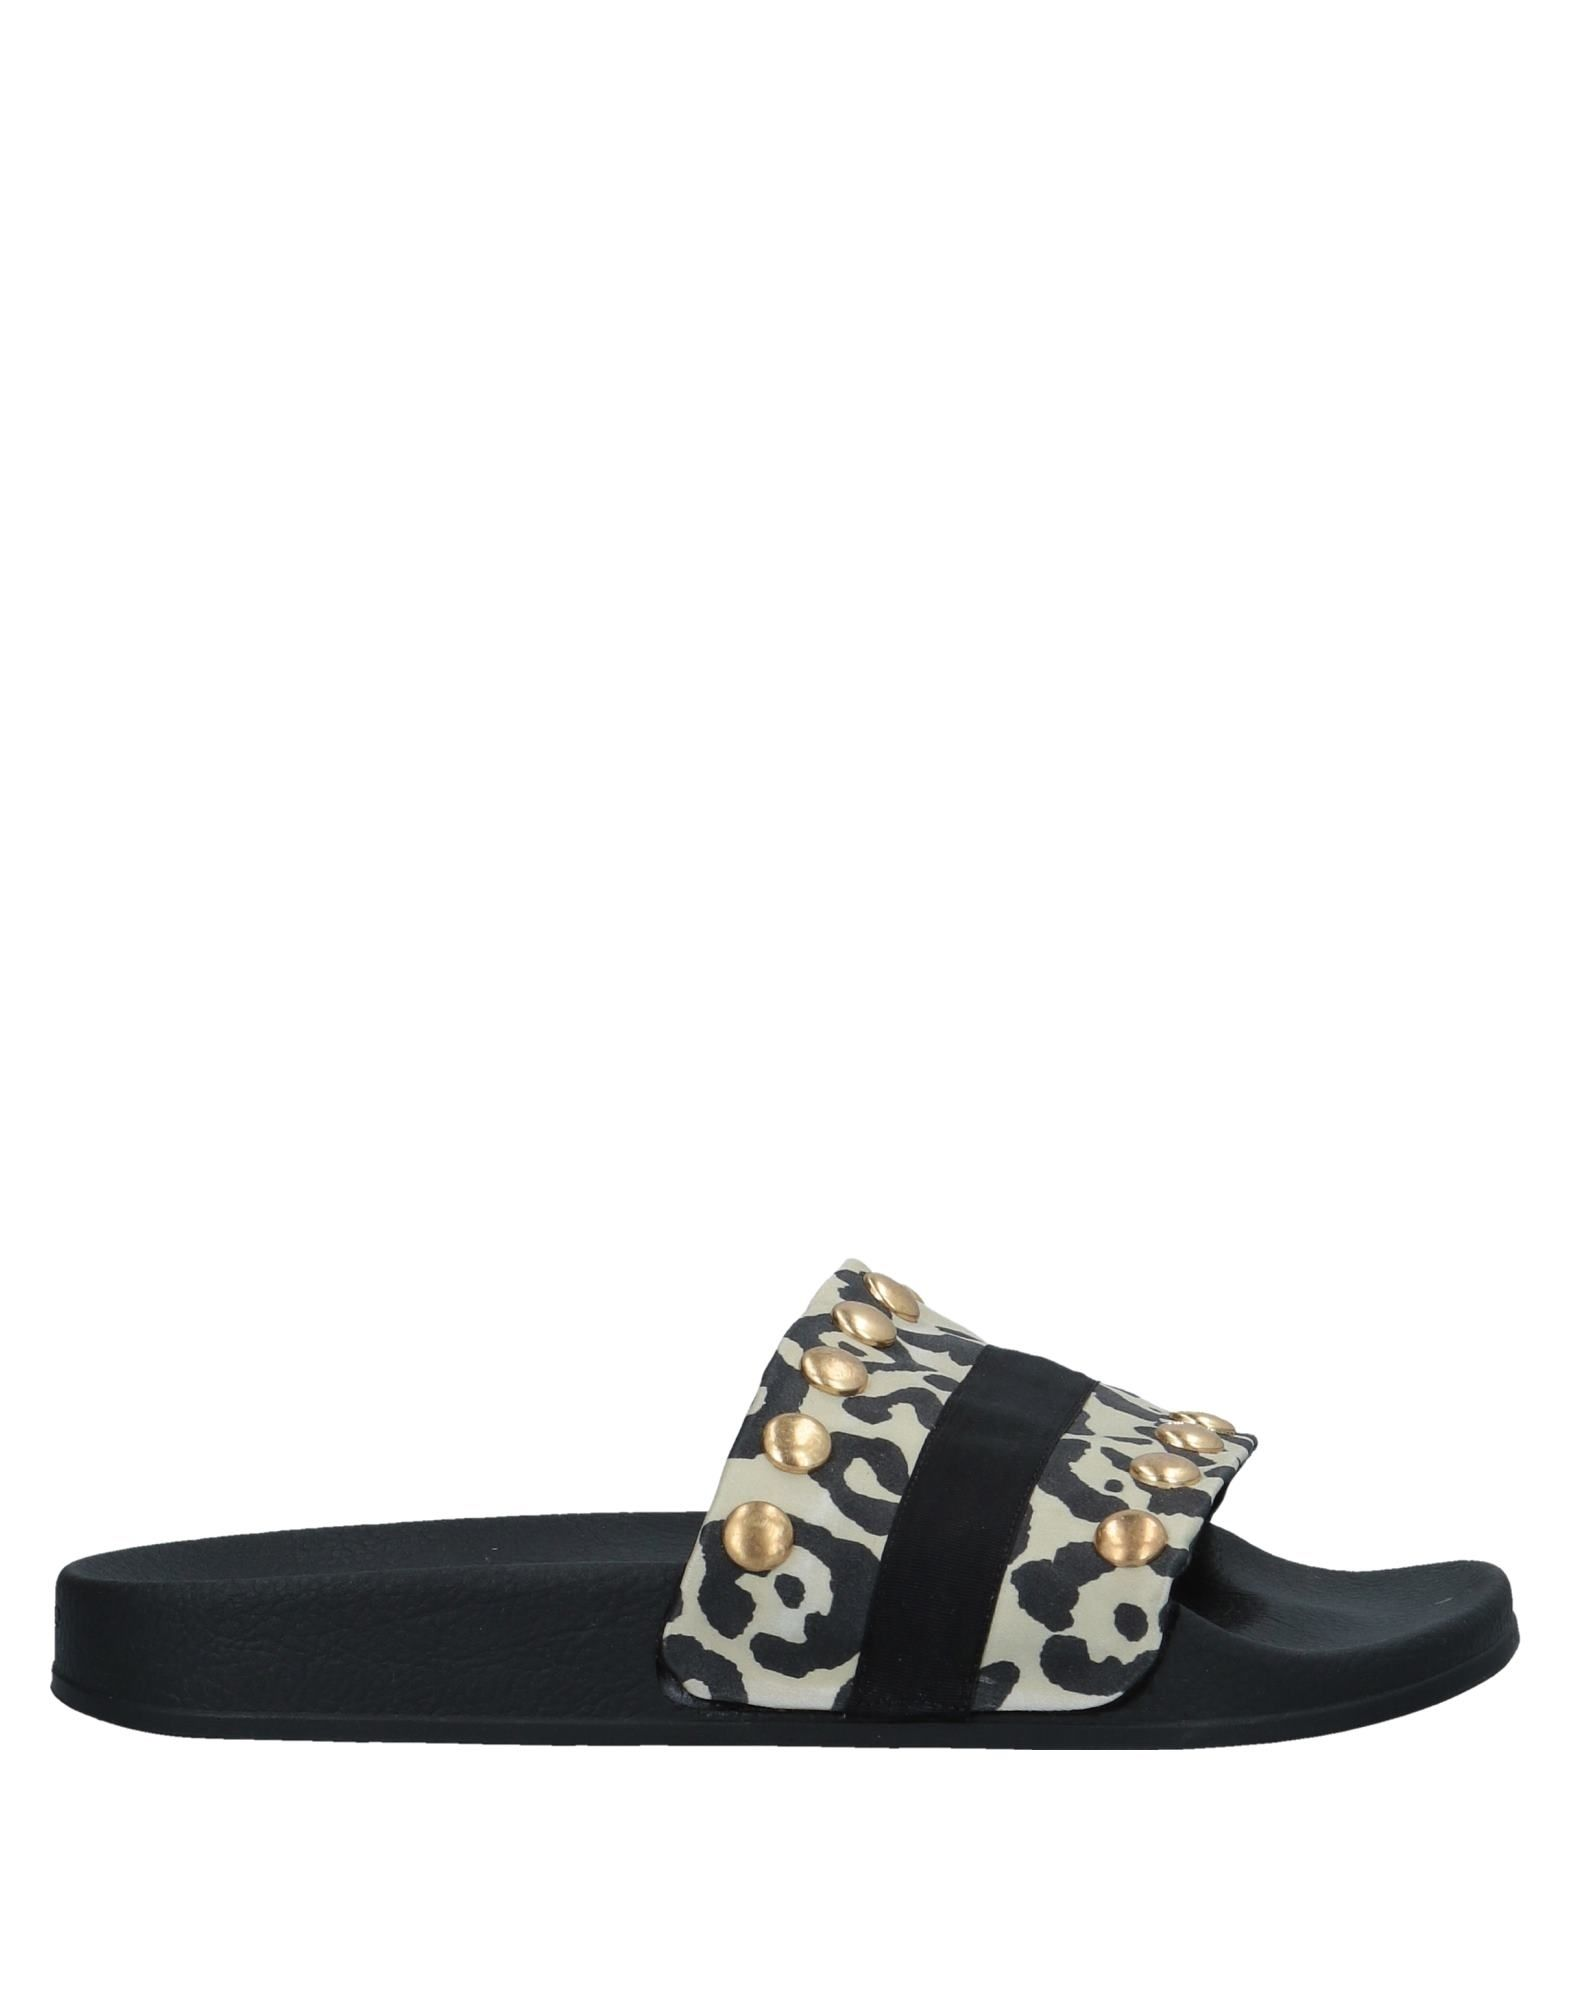 Pinko Sandals Sandals - Women Pinko Sandals Pinko online on  Canada - 11508445AI 7a2cfb